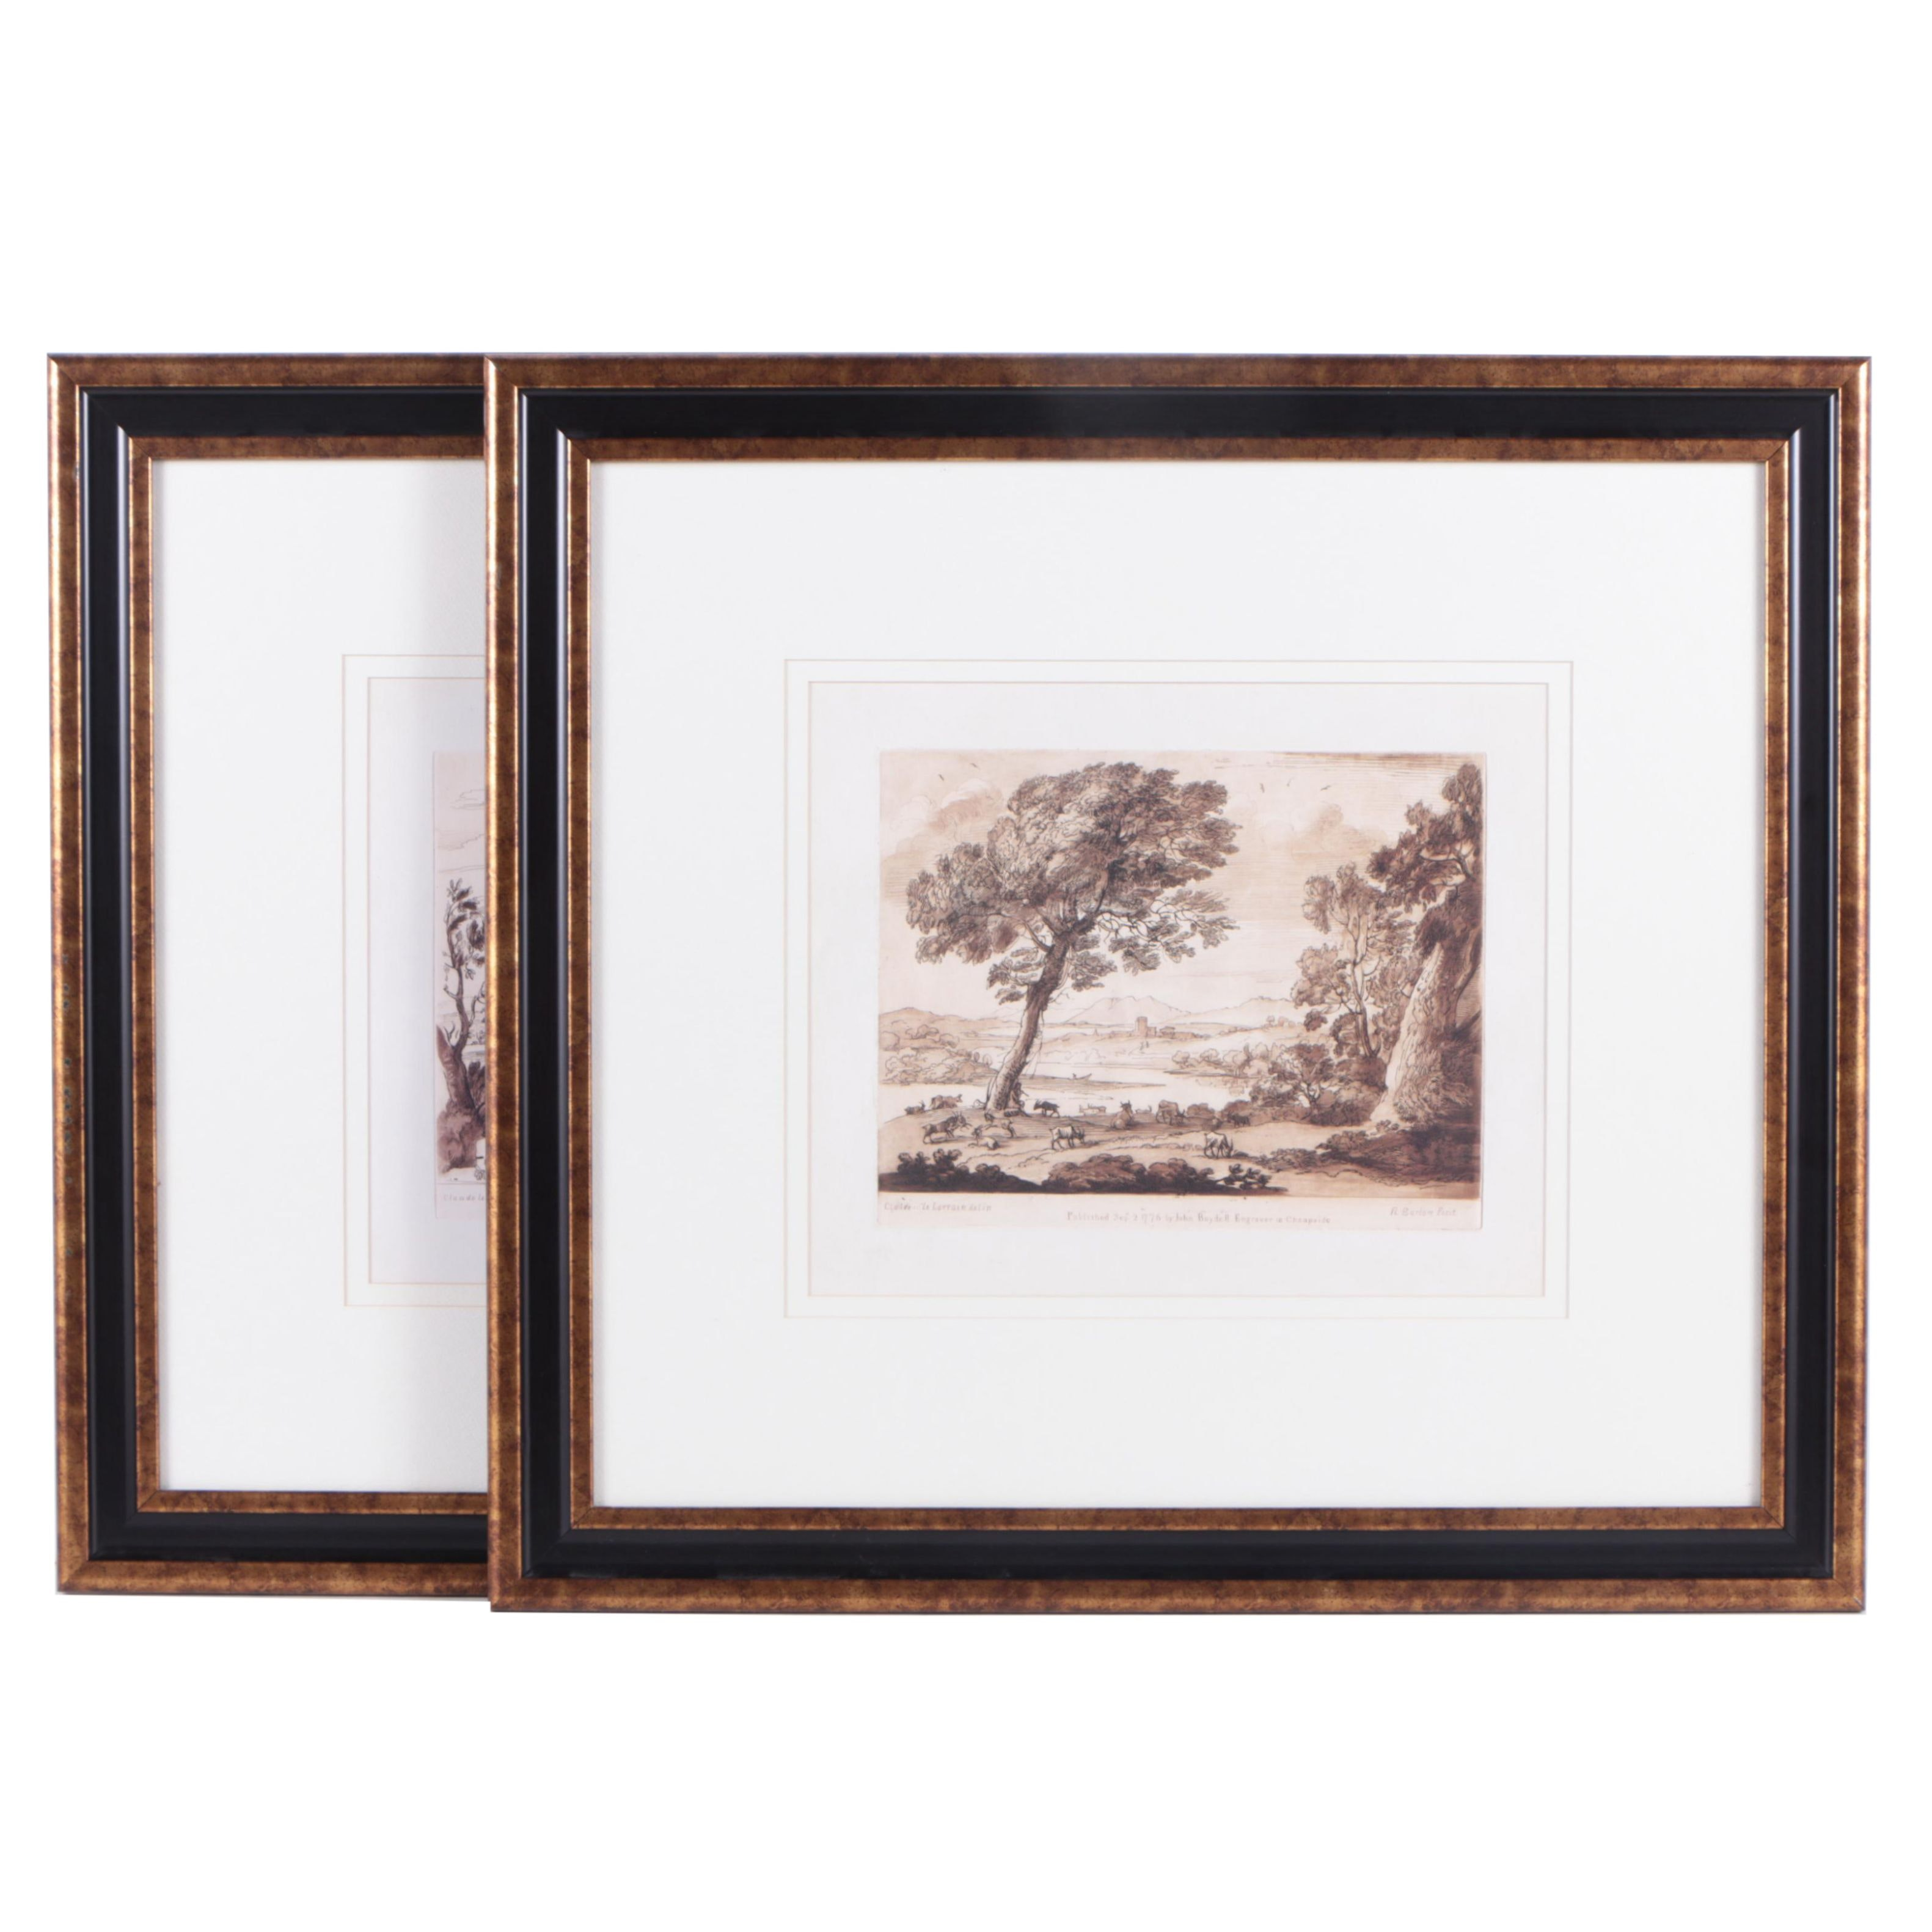 Offset Lithographs After Claude Lorrain's Etchings of Landscapes